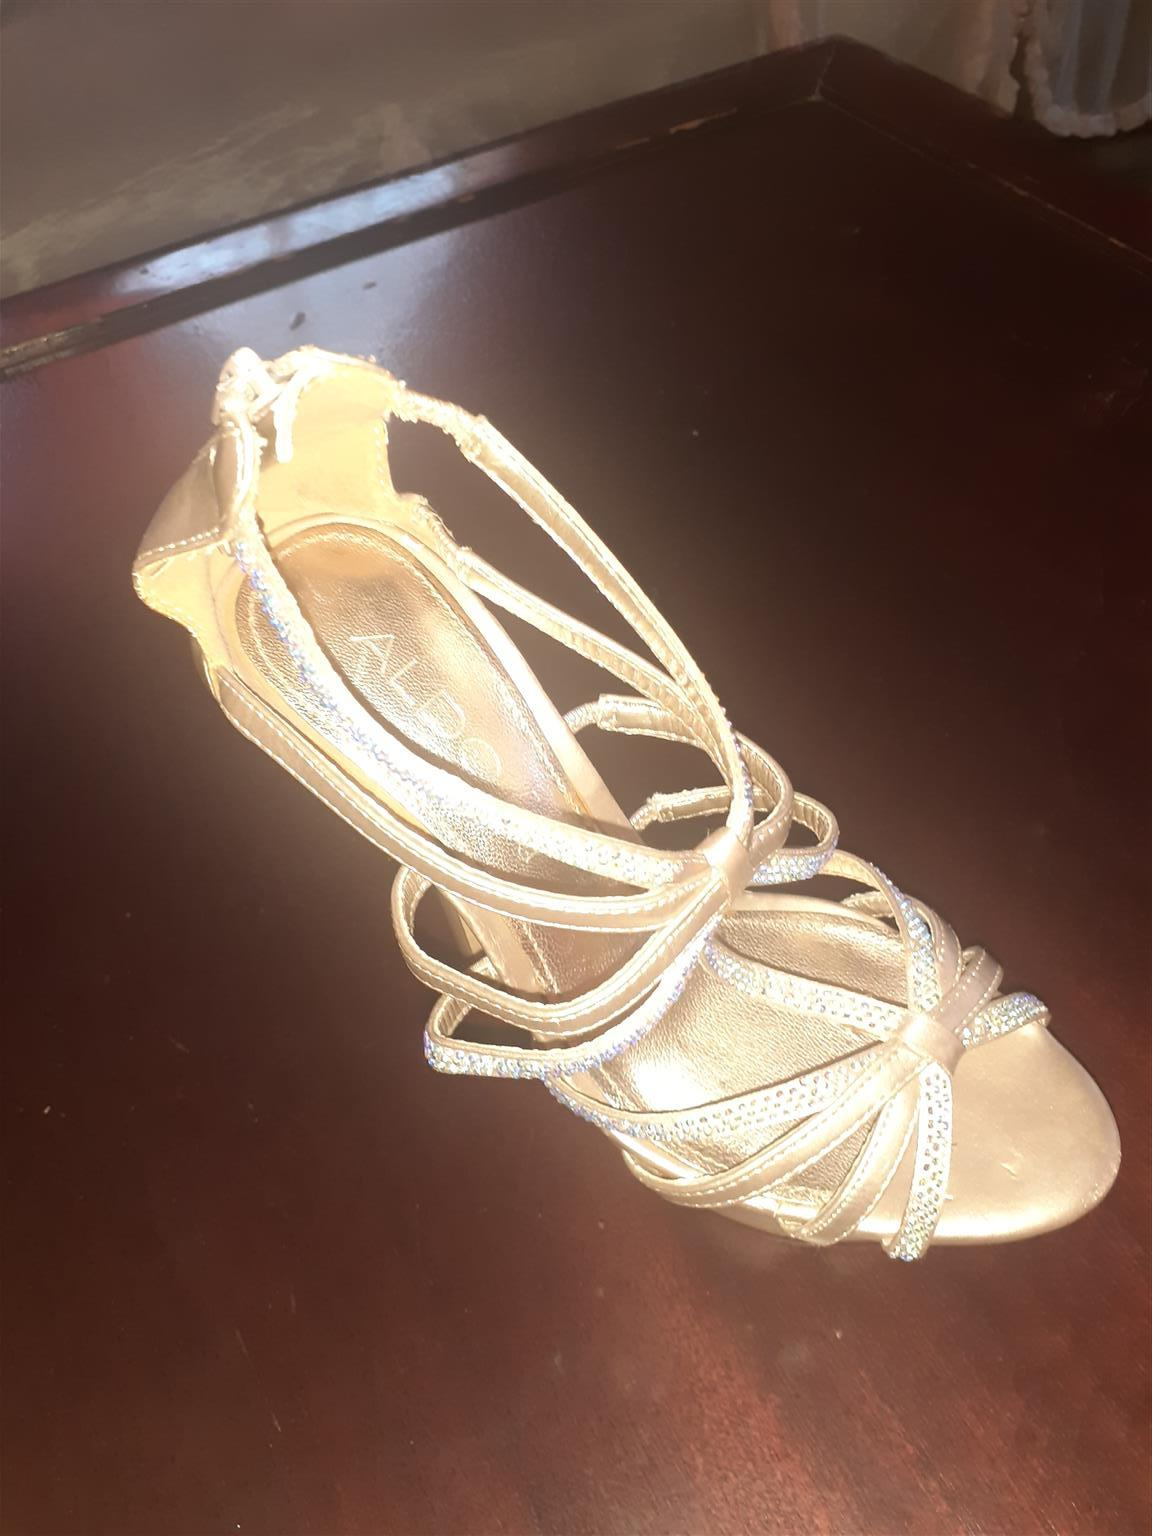 Long heels shoes with straps, pink in color,they are a size 4 fron Zara.